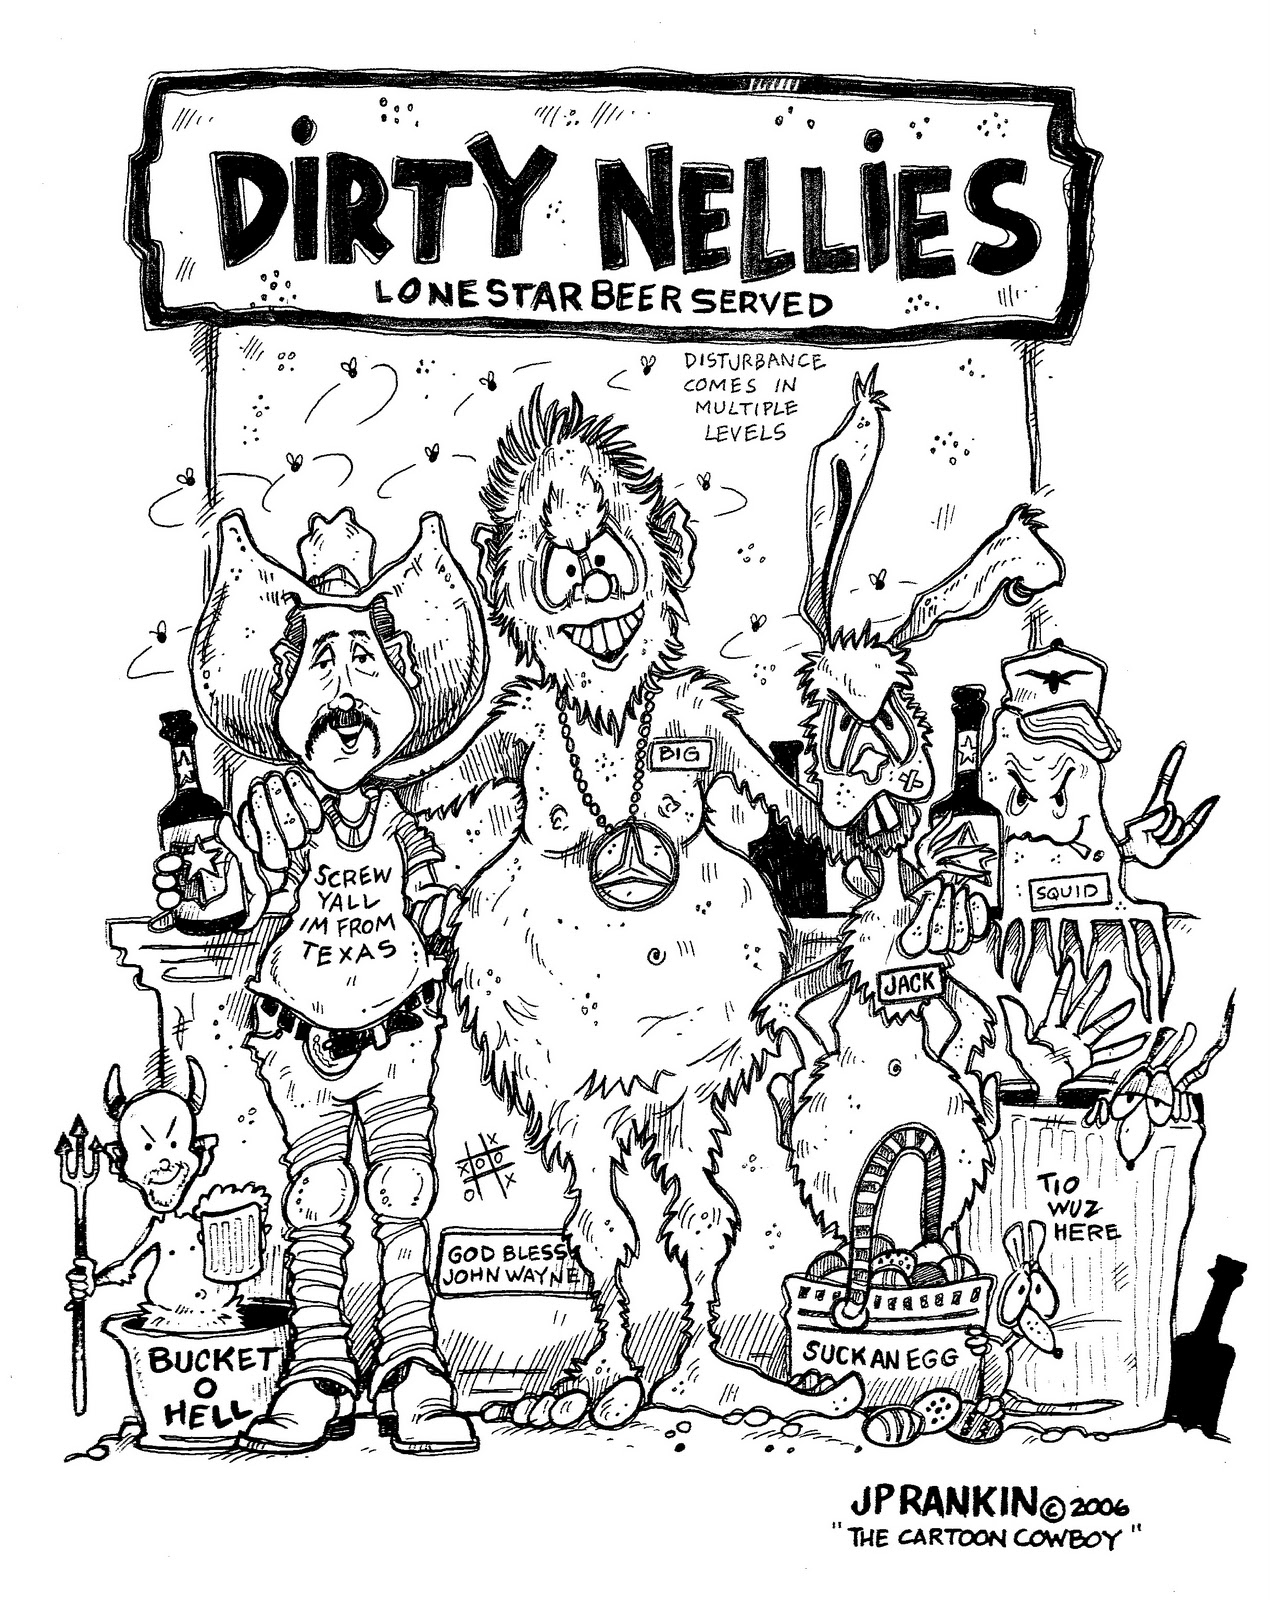 DIRTY NELLIE'S